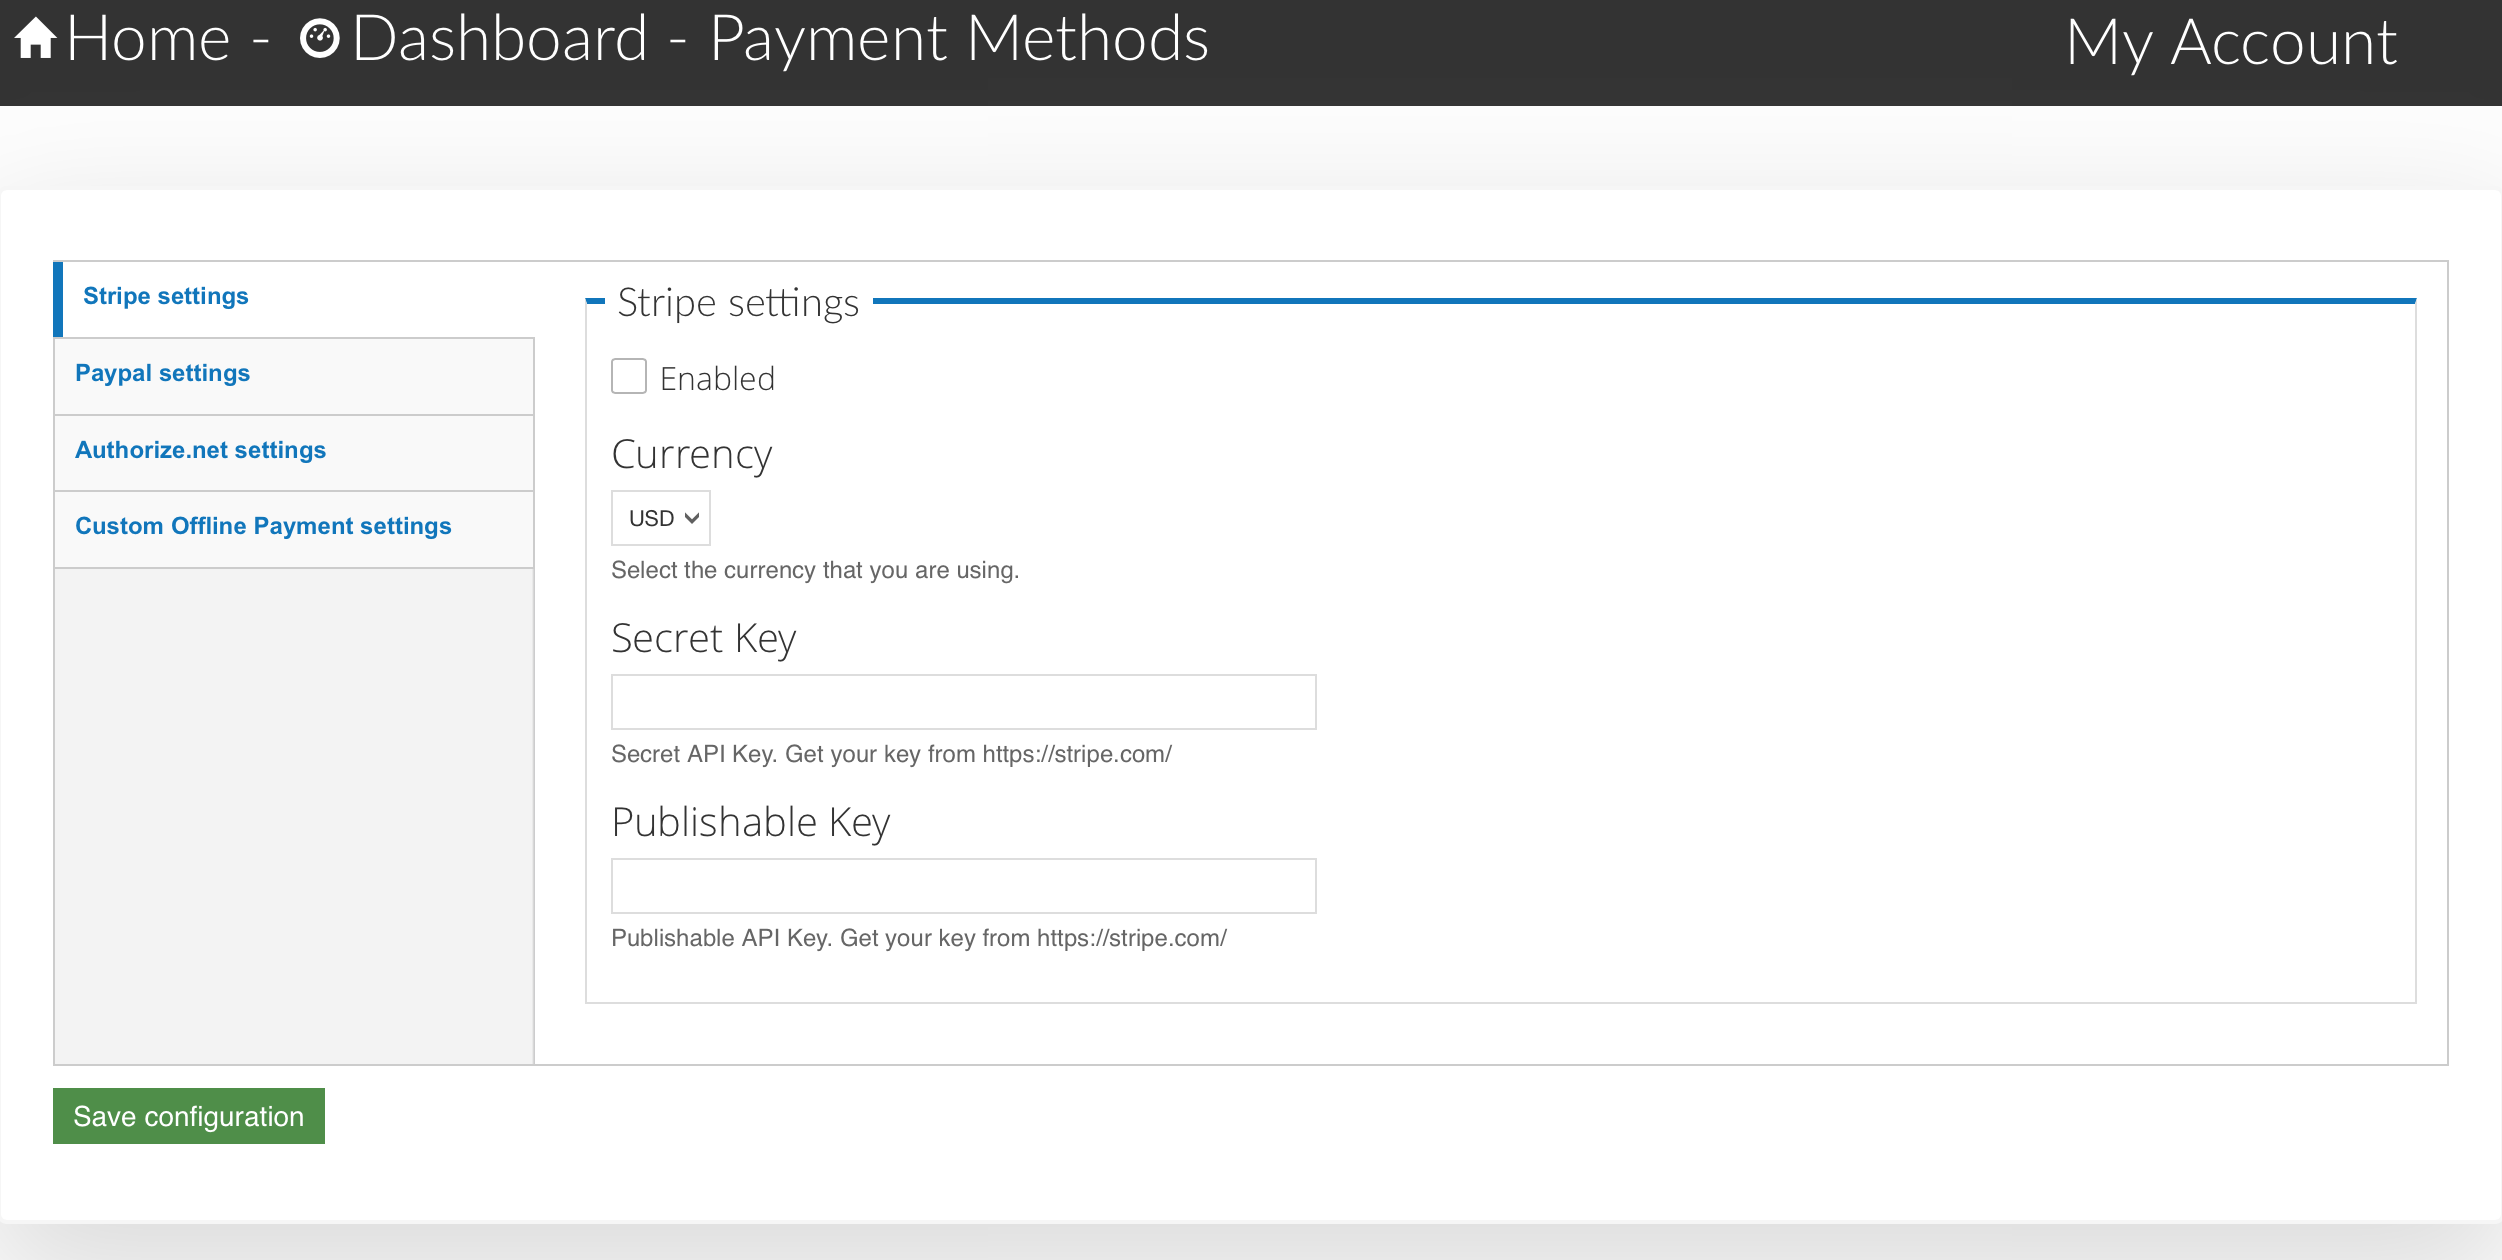 ../../_images/payment_methods.png